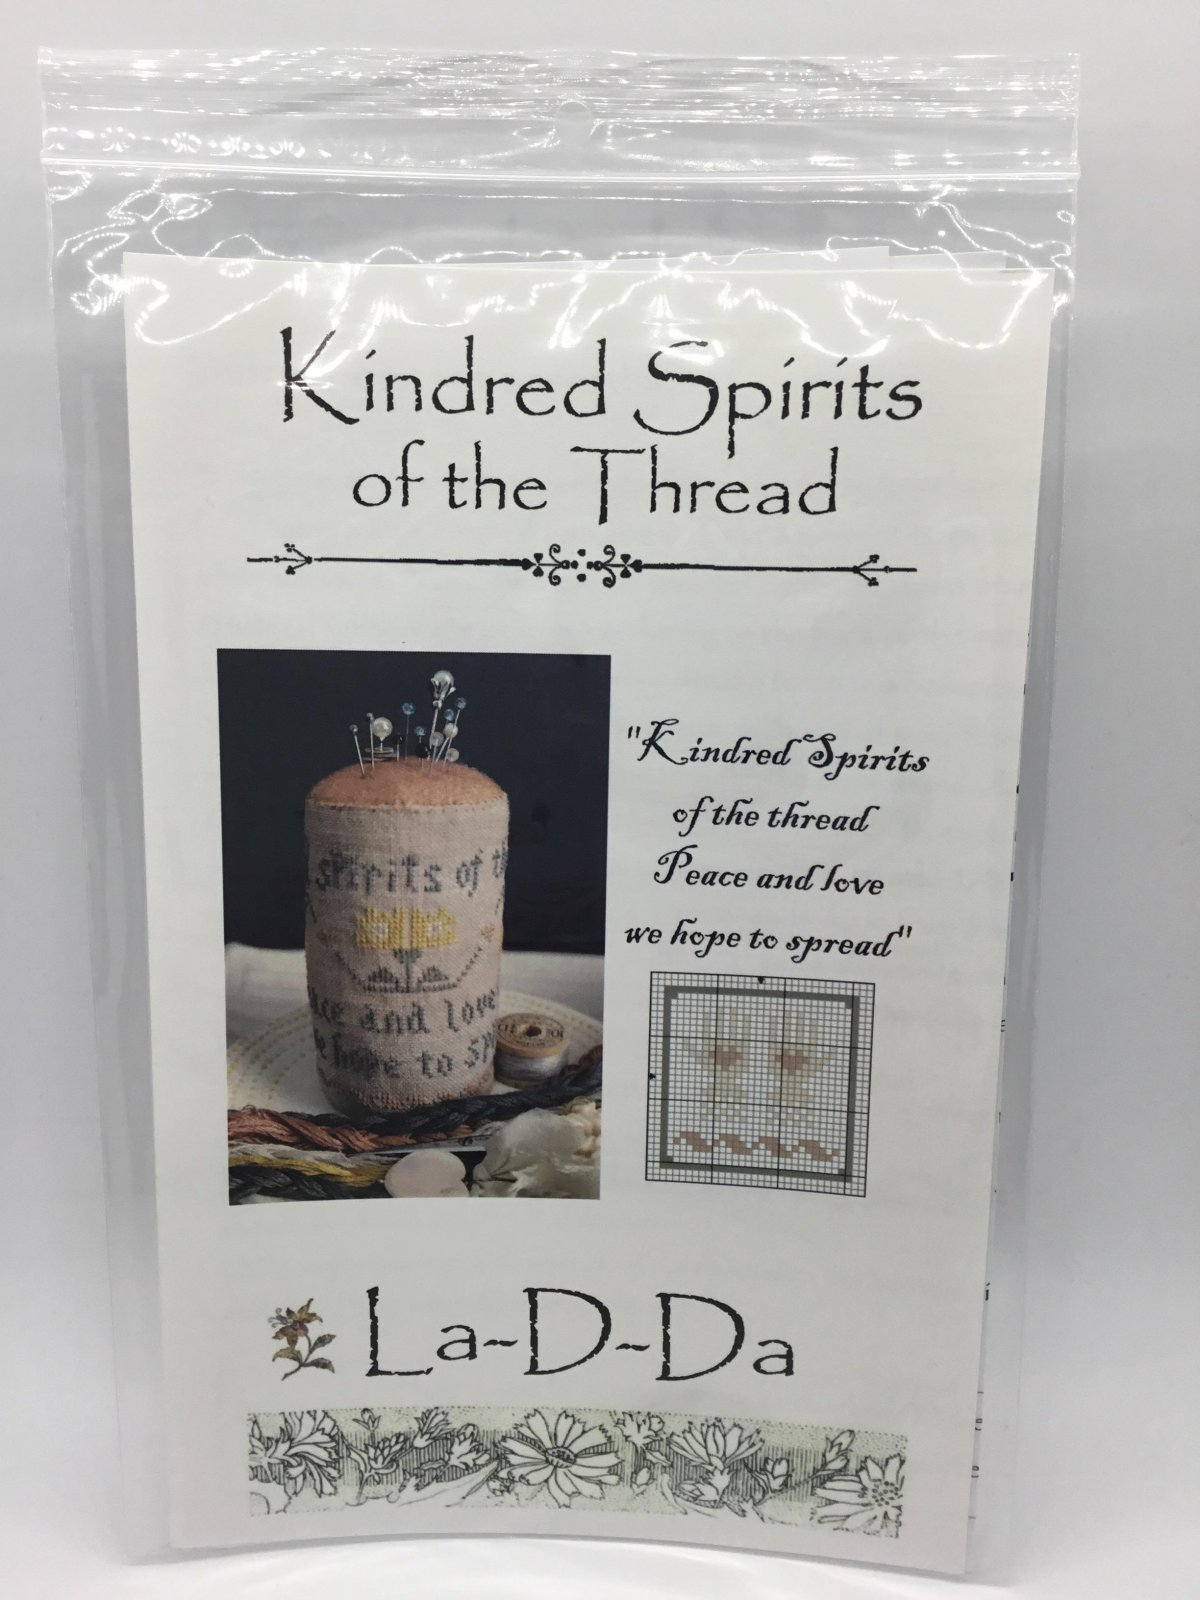 Kindred Spirits of the Thread